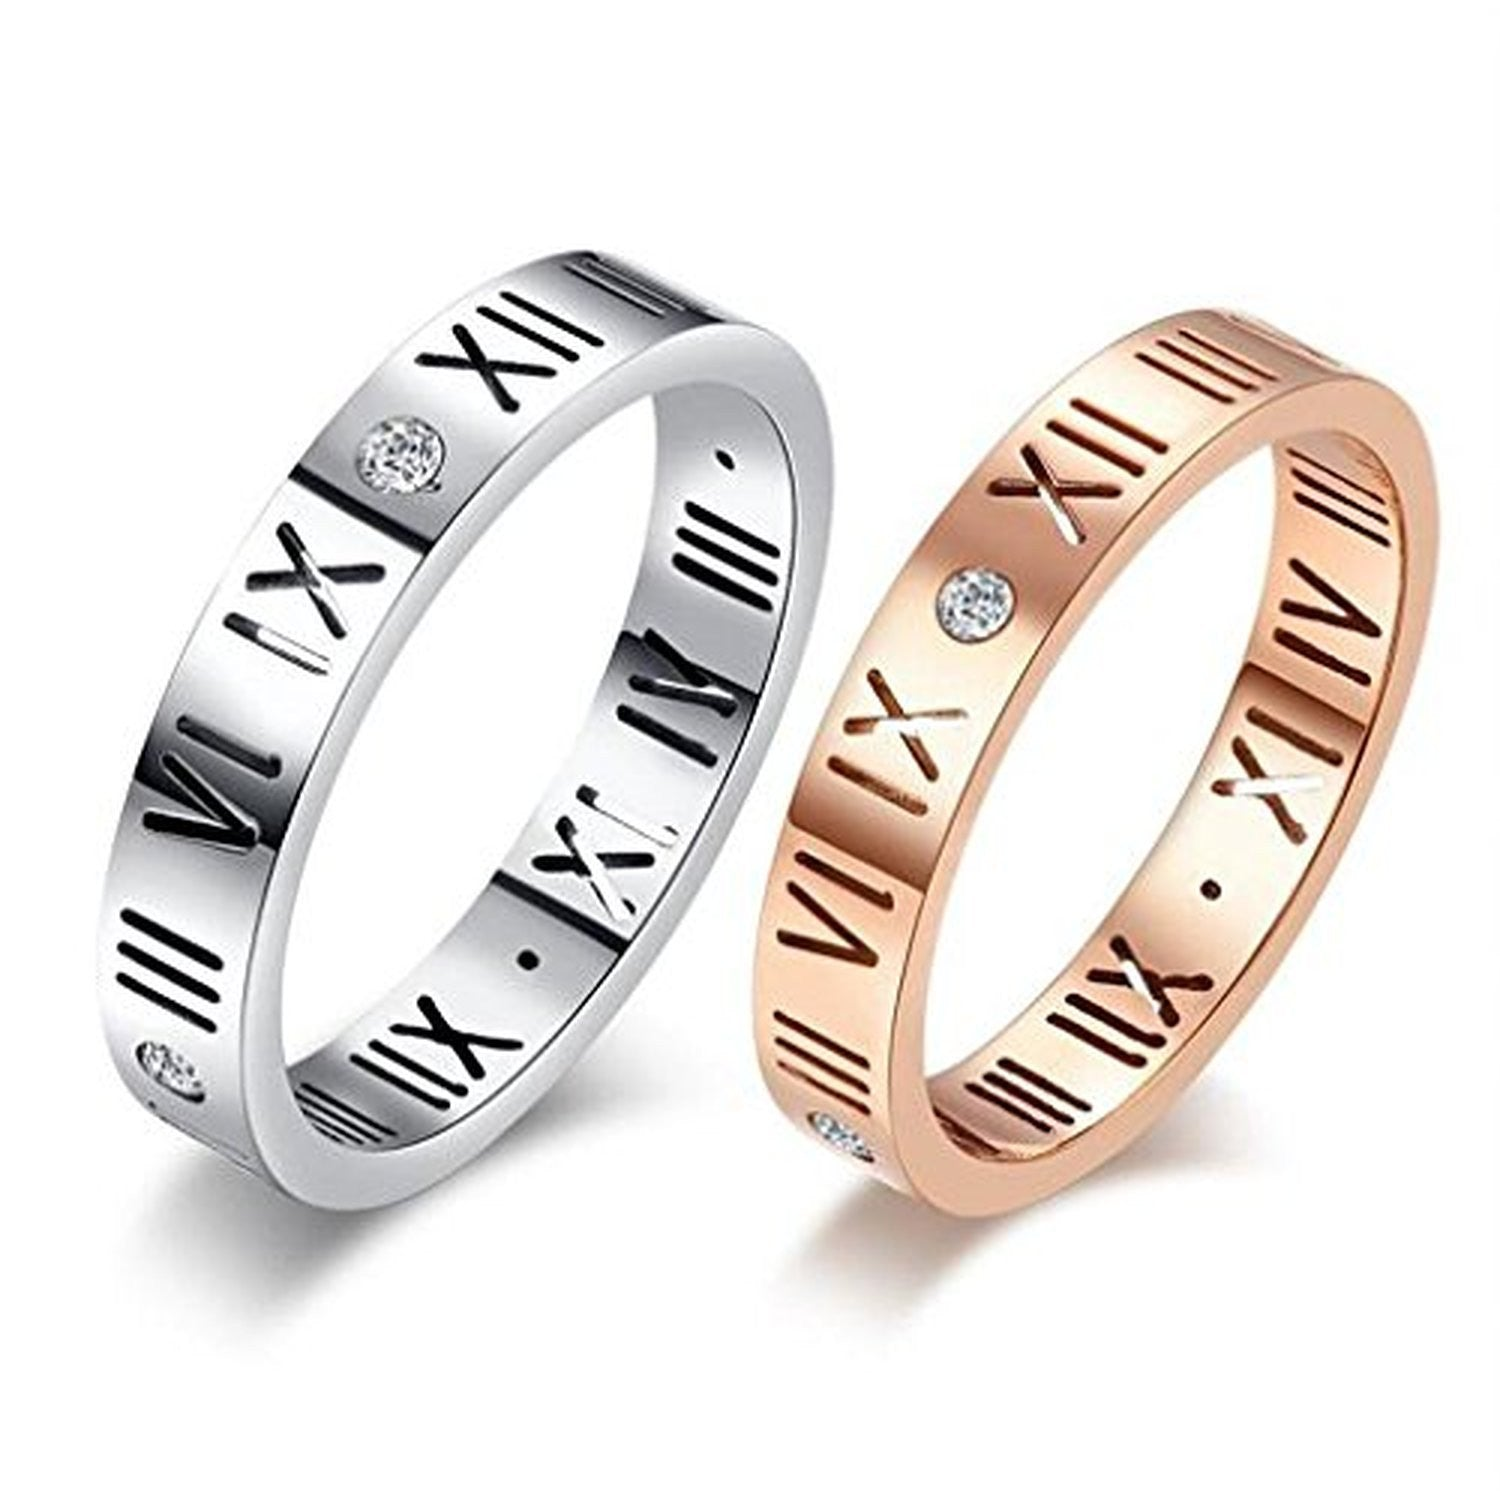 en rings engagement argento silver copia fidanzamento fedine us incision extra incisione couple big coppia